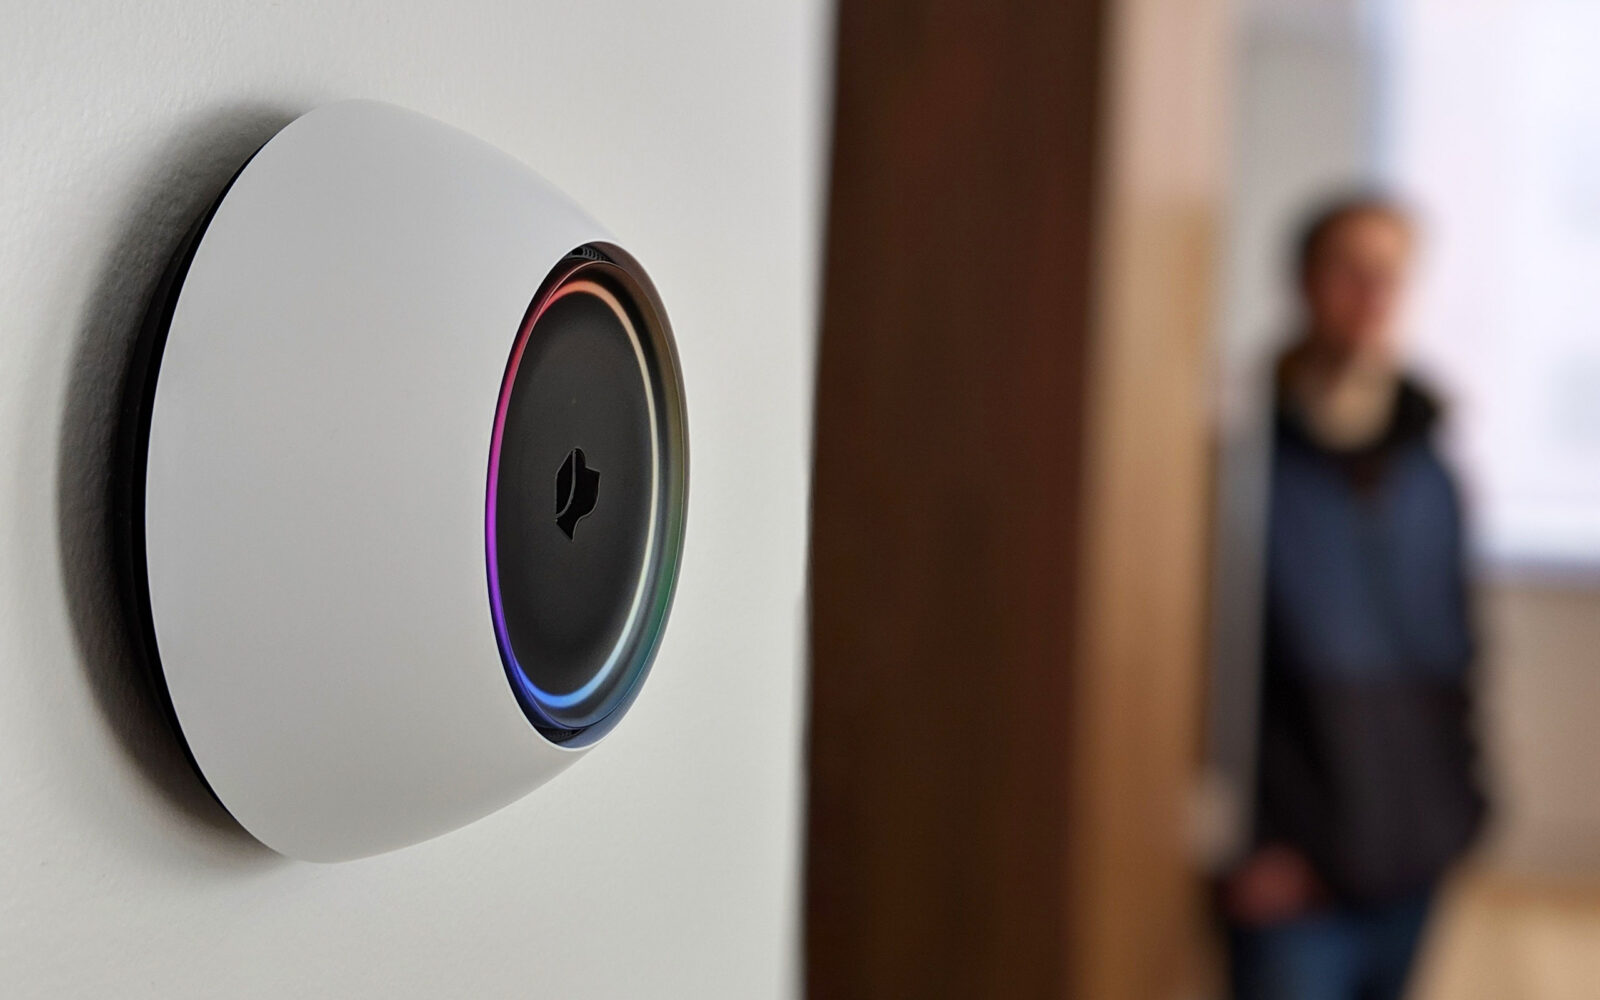 A smart button that also works as a home butler by learning your preferences with AI